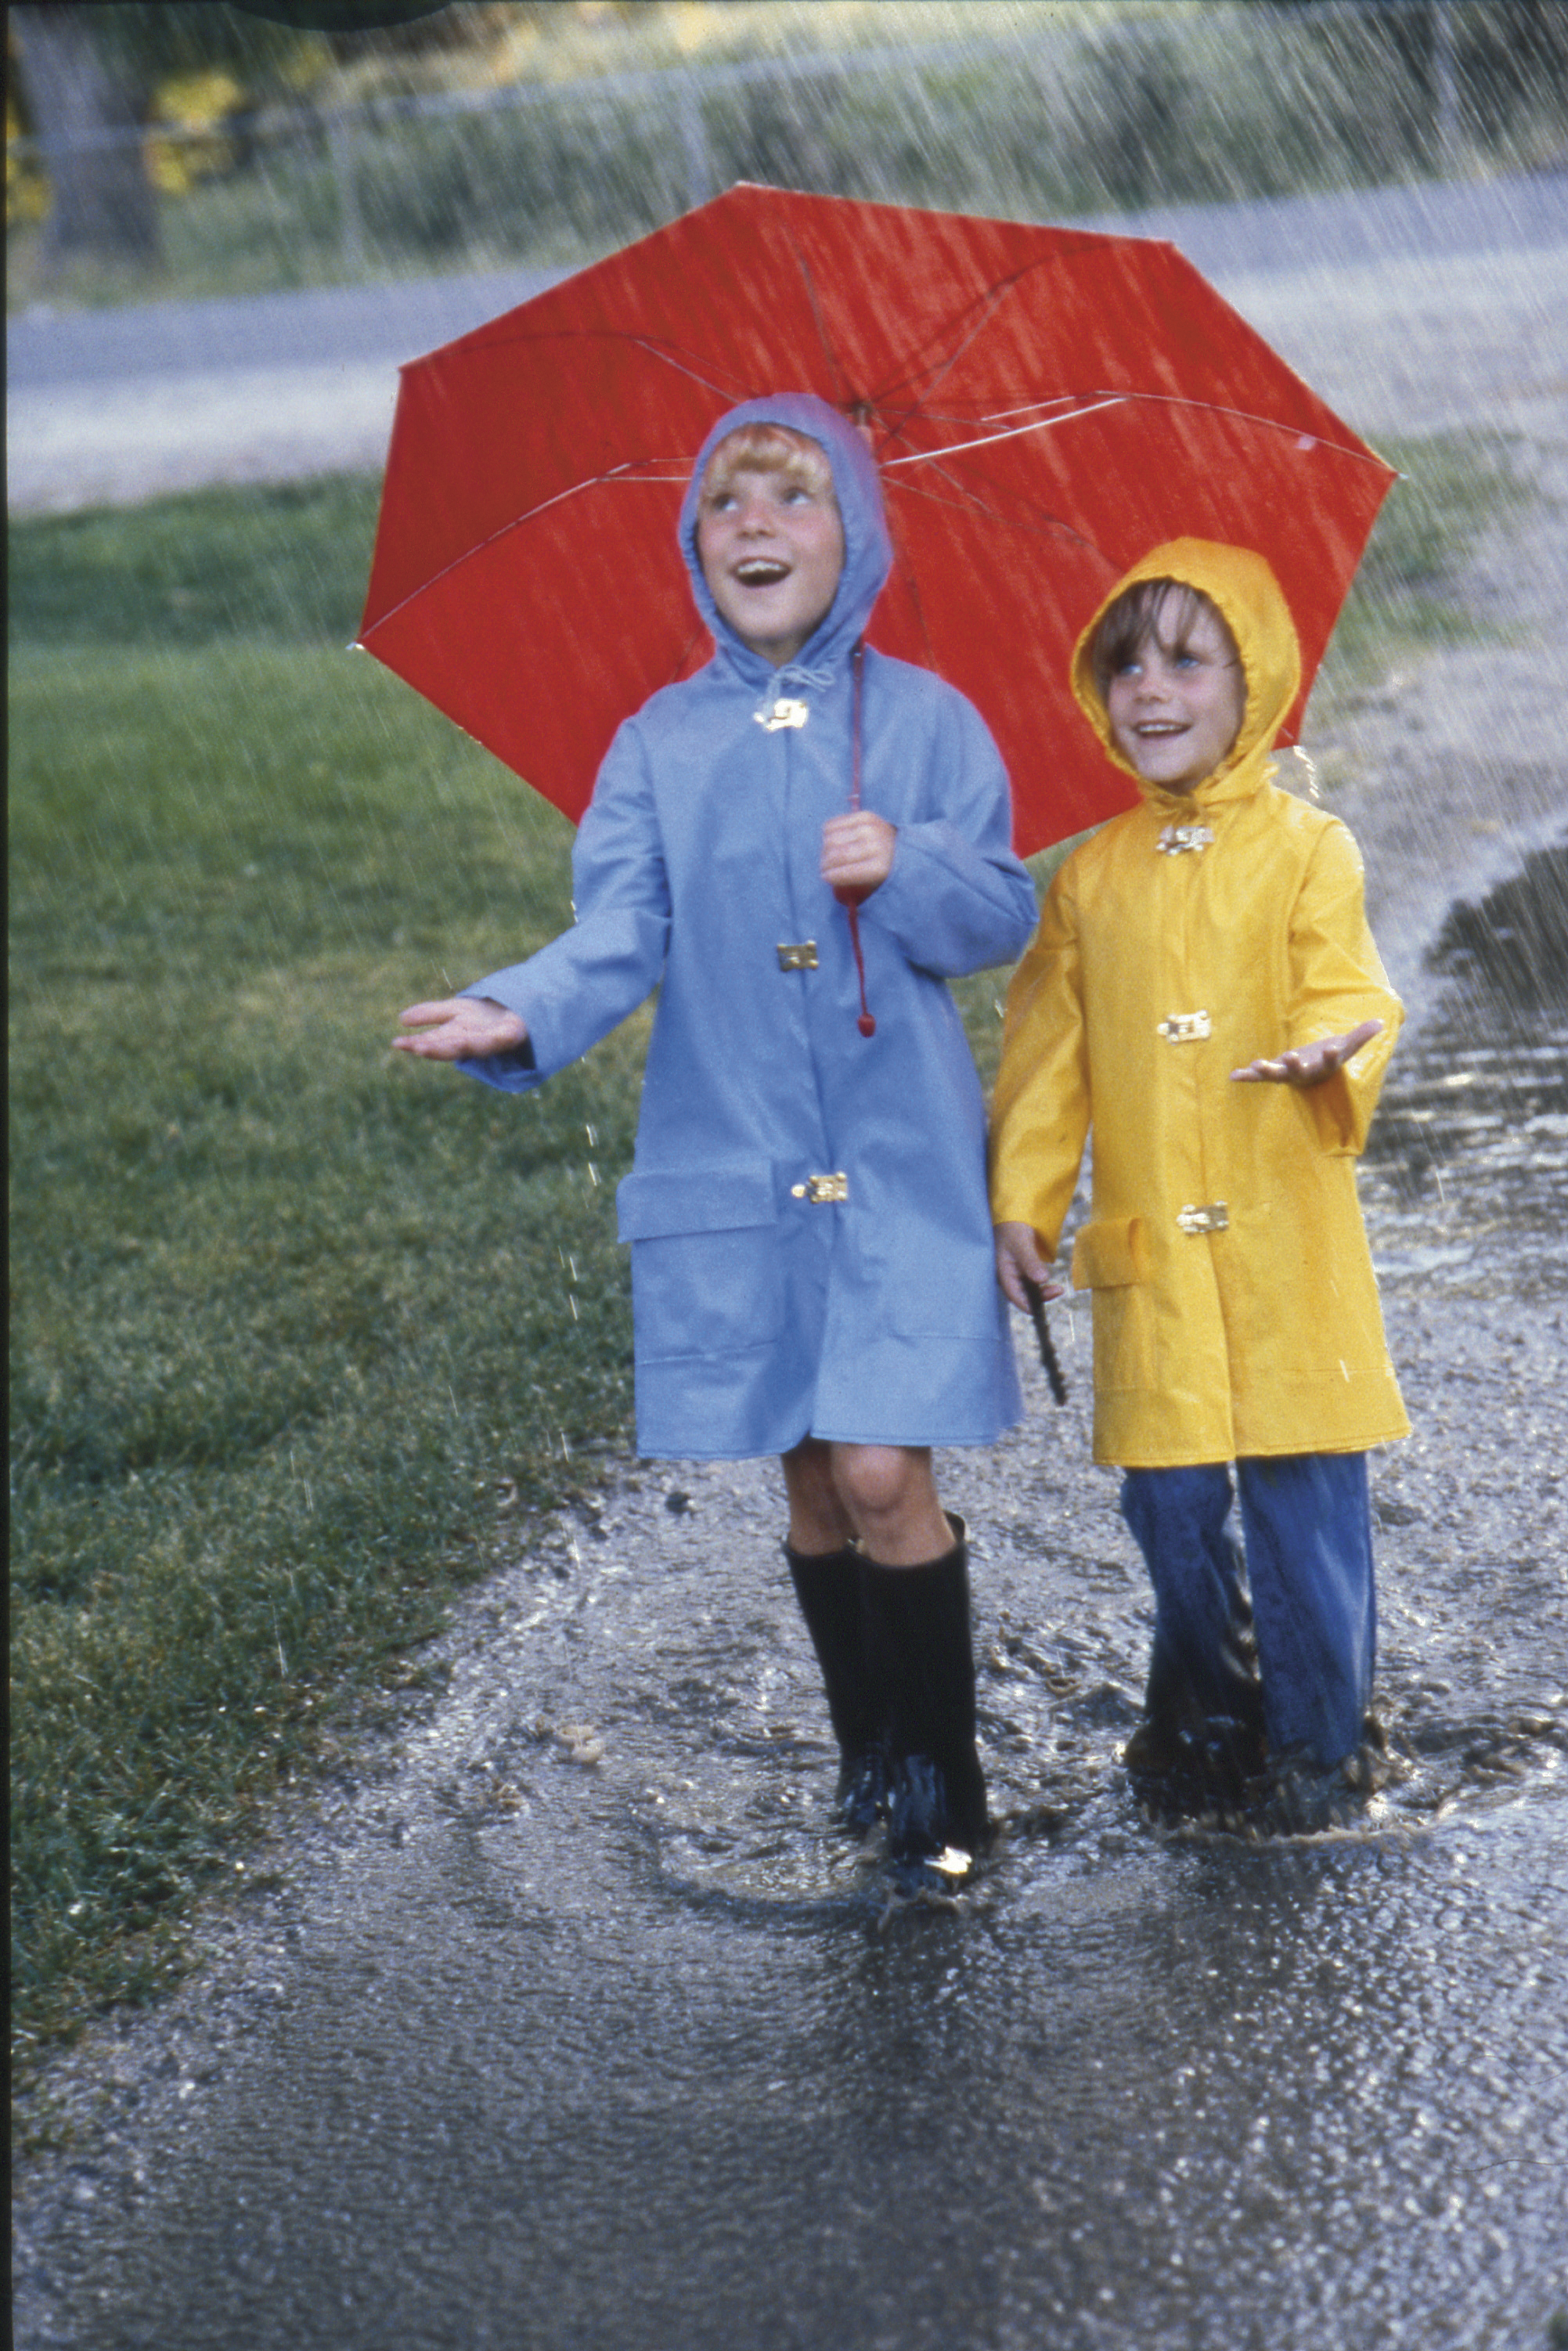 Two girls in raincoats and an umbrella play outside in the rain and puddles.